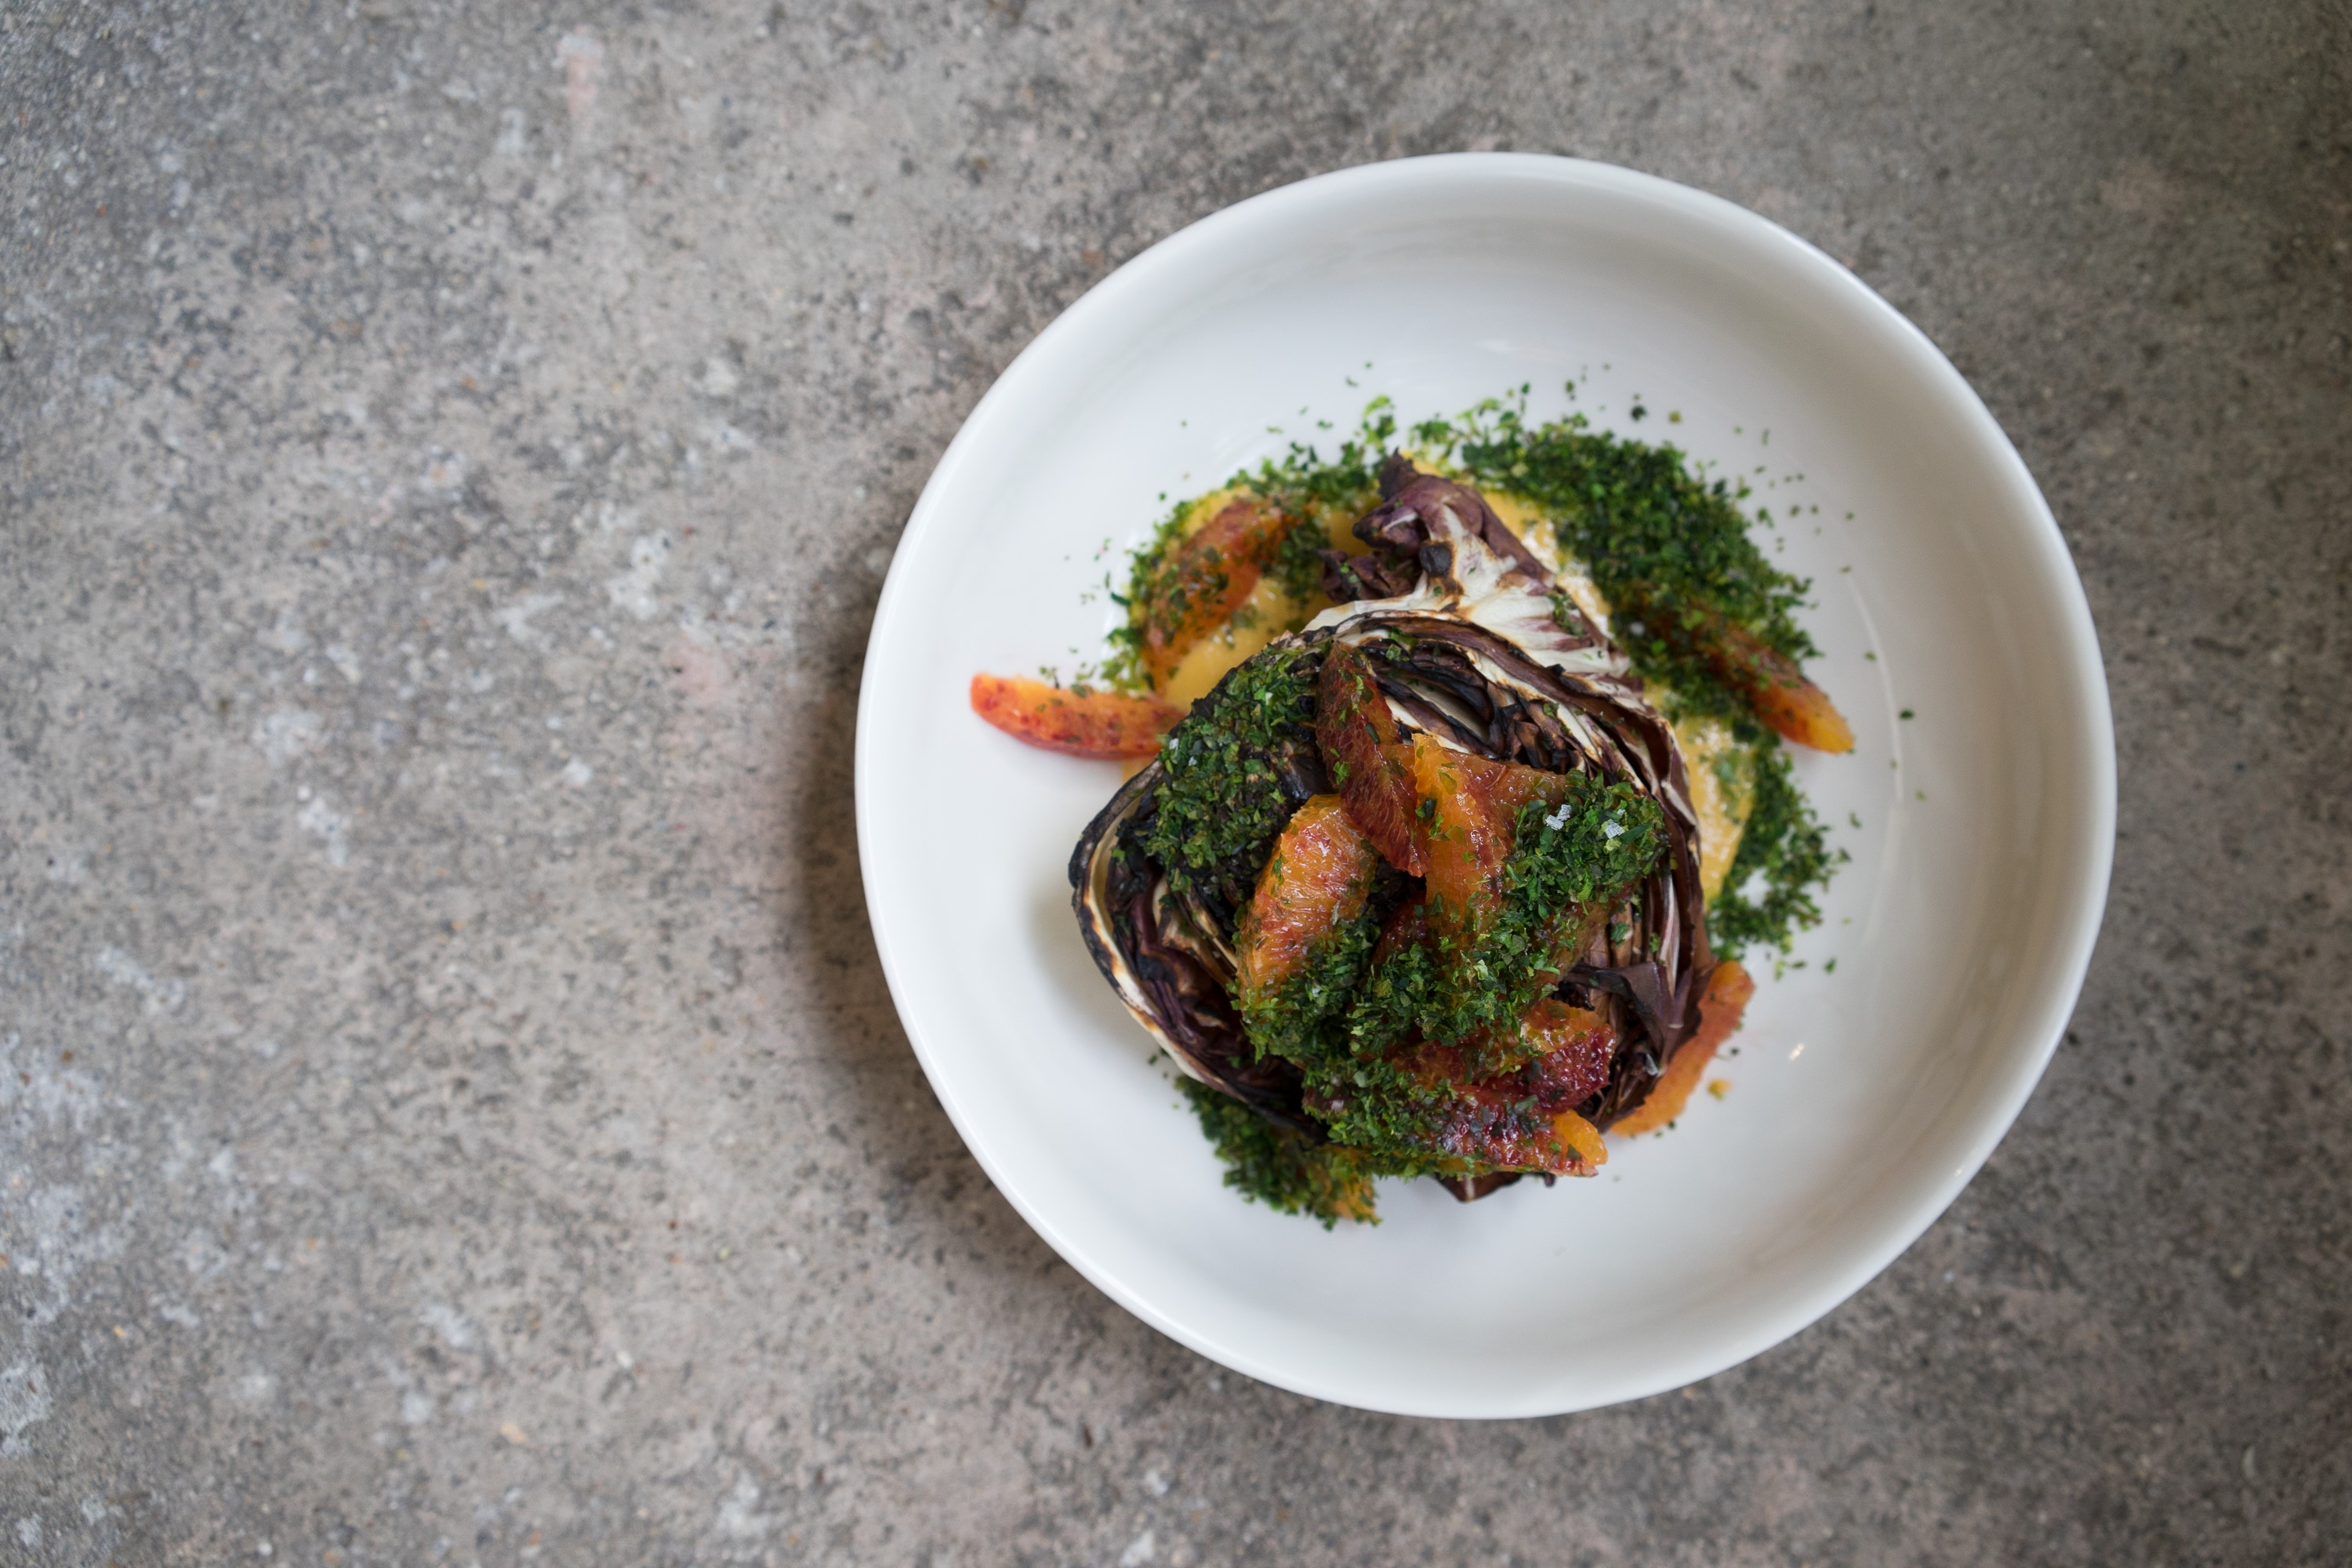 Dandy, Newington Green: Charred Radicchio, Blood Orange, Miso and Nori